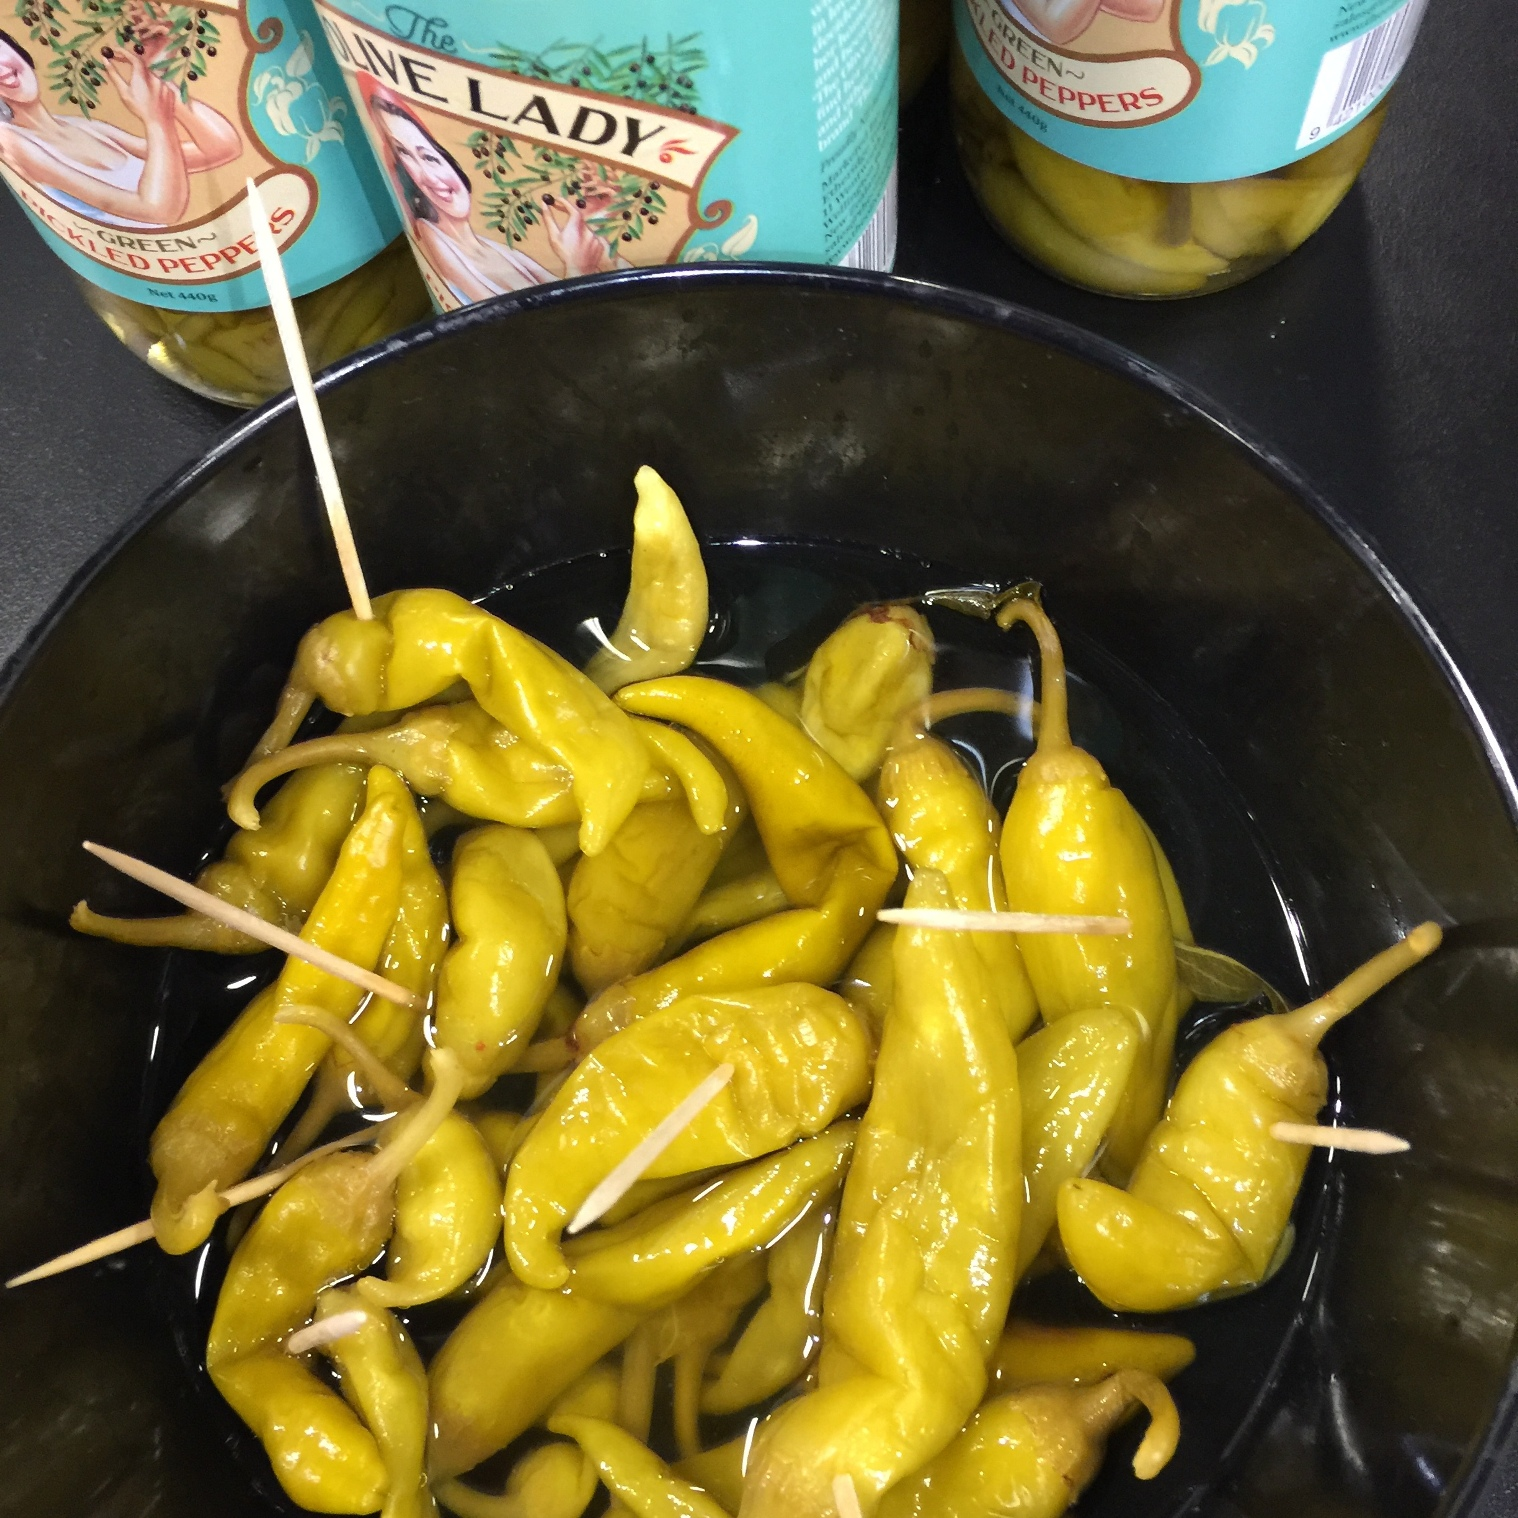 The Olive Lady 's green pickled peppers